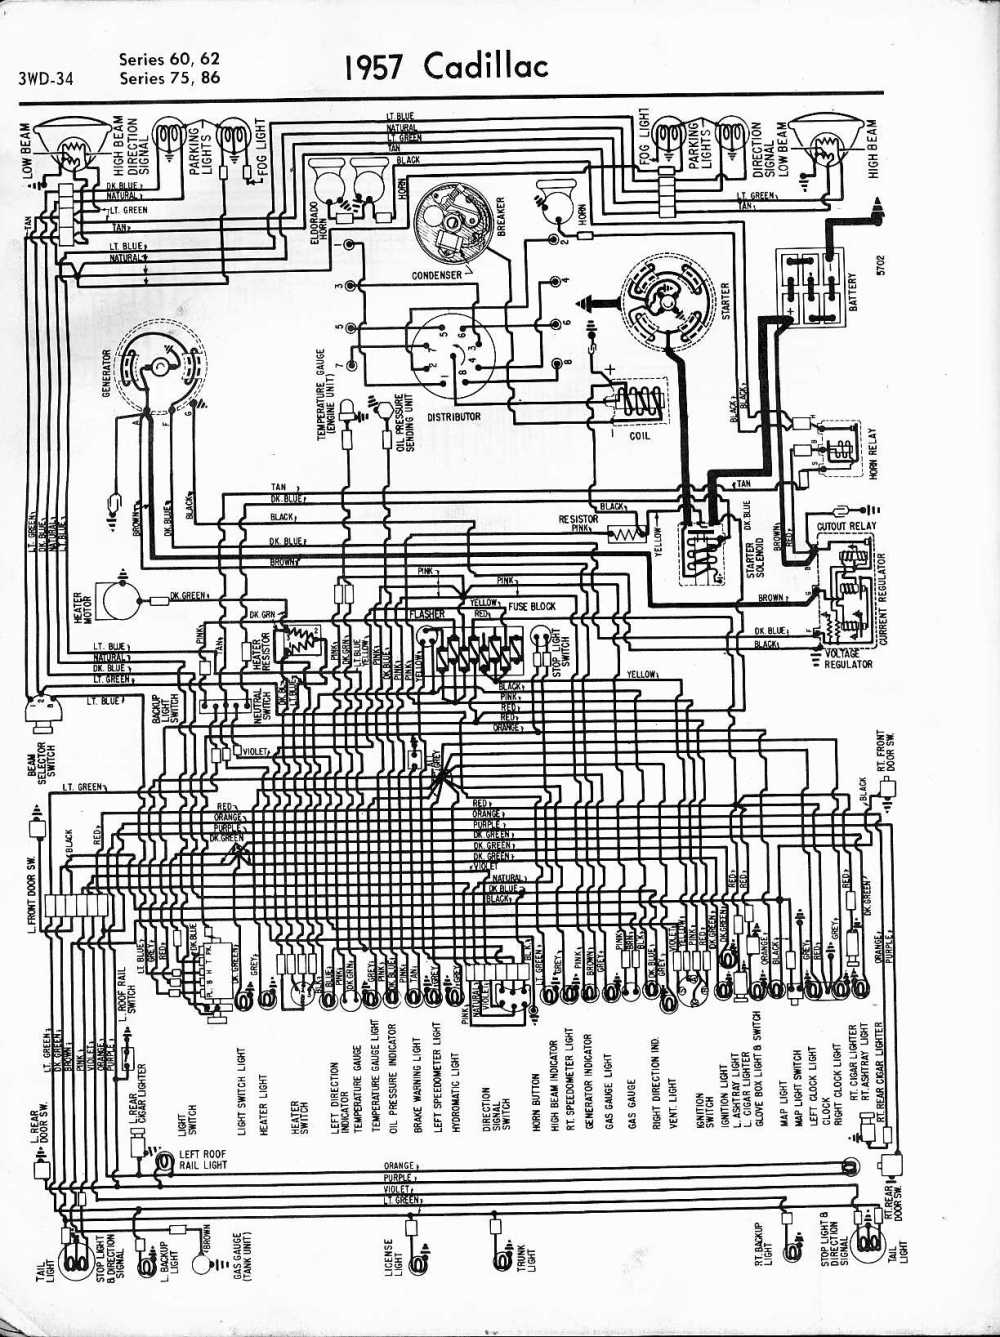 medium resolution of cadillac wiring diagrams 1957 1965 gm ignition coil wiring diagram 1961 cadillac ignition wiring